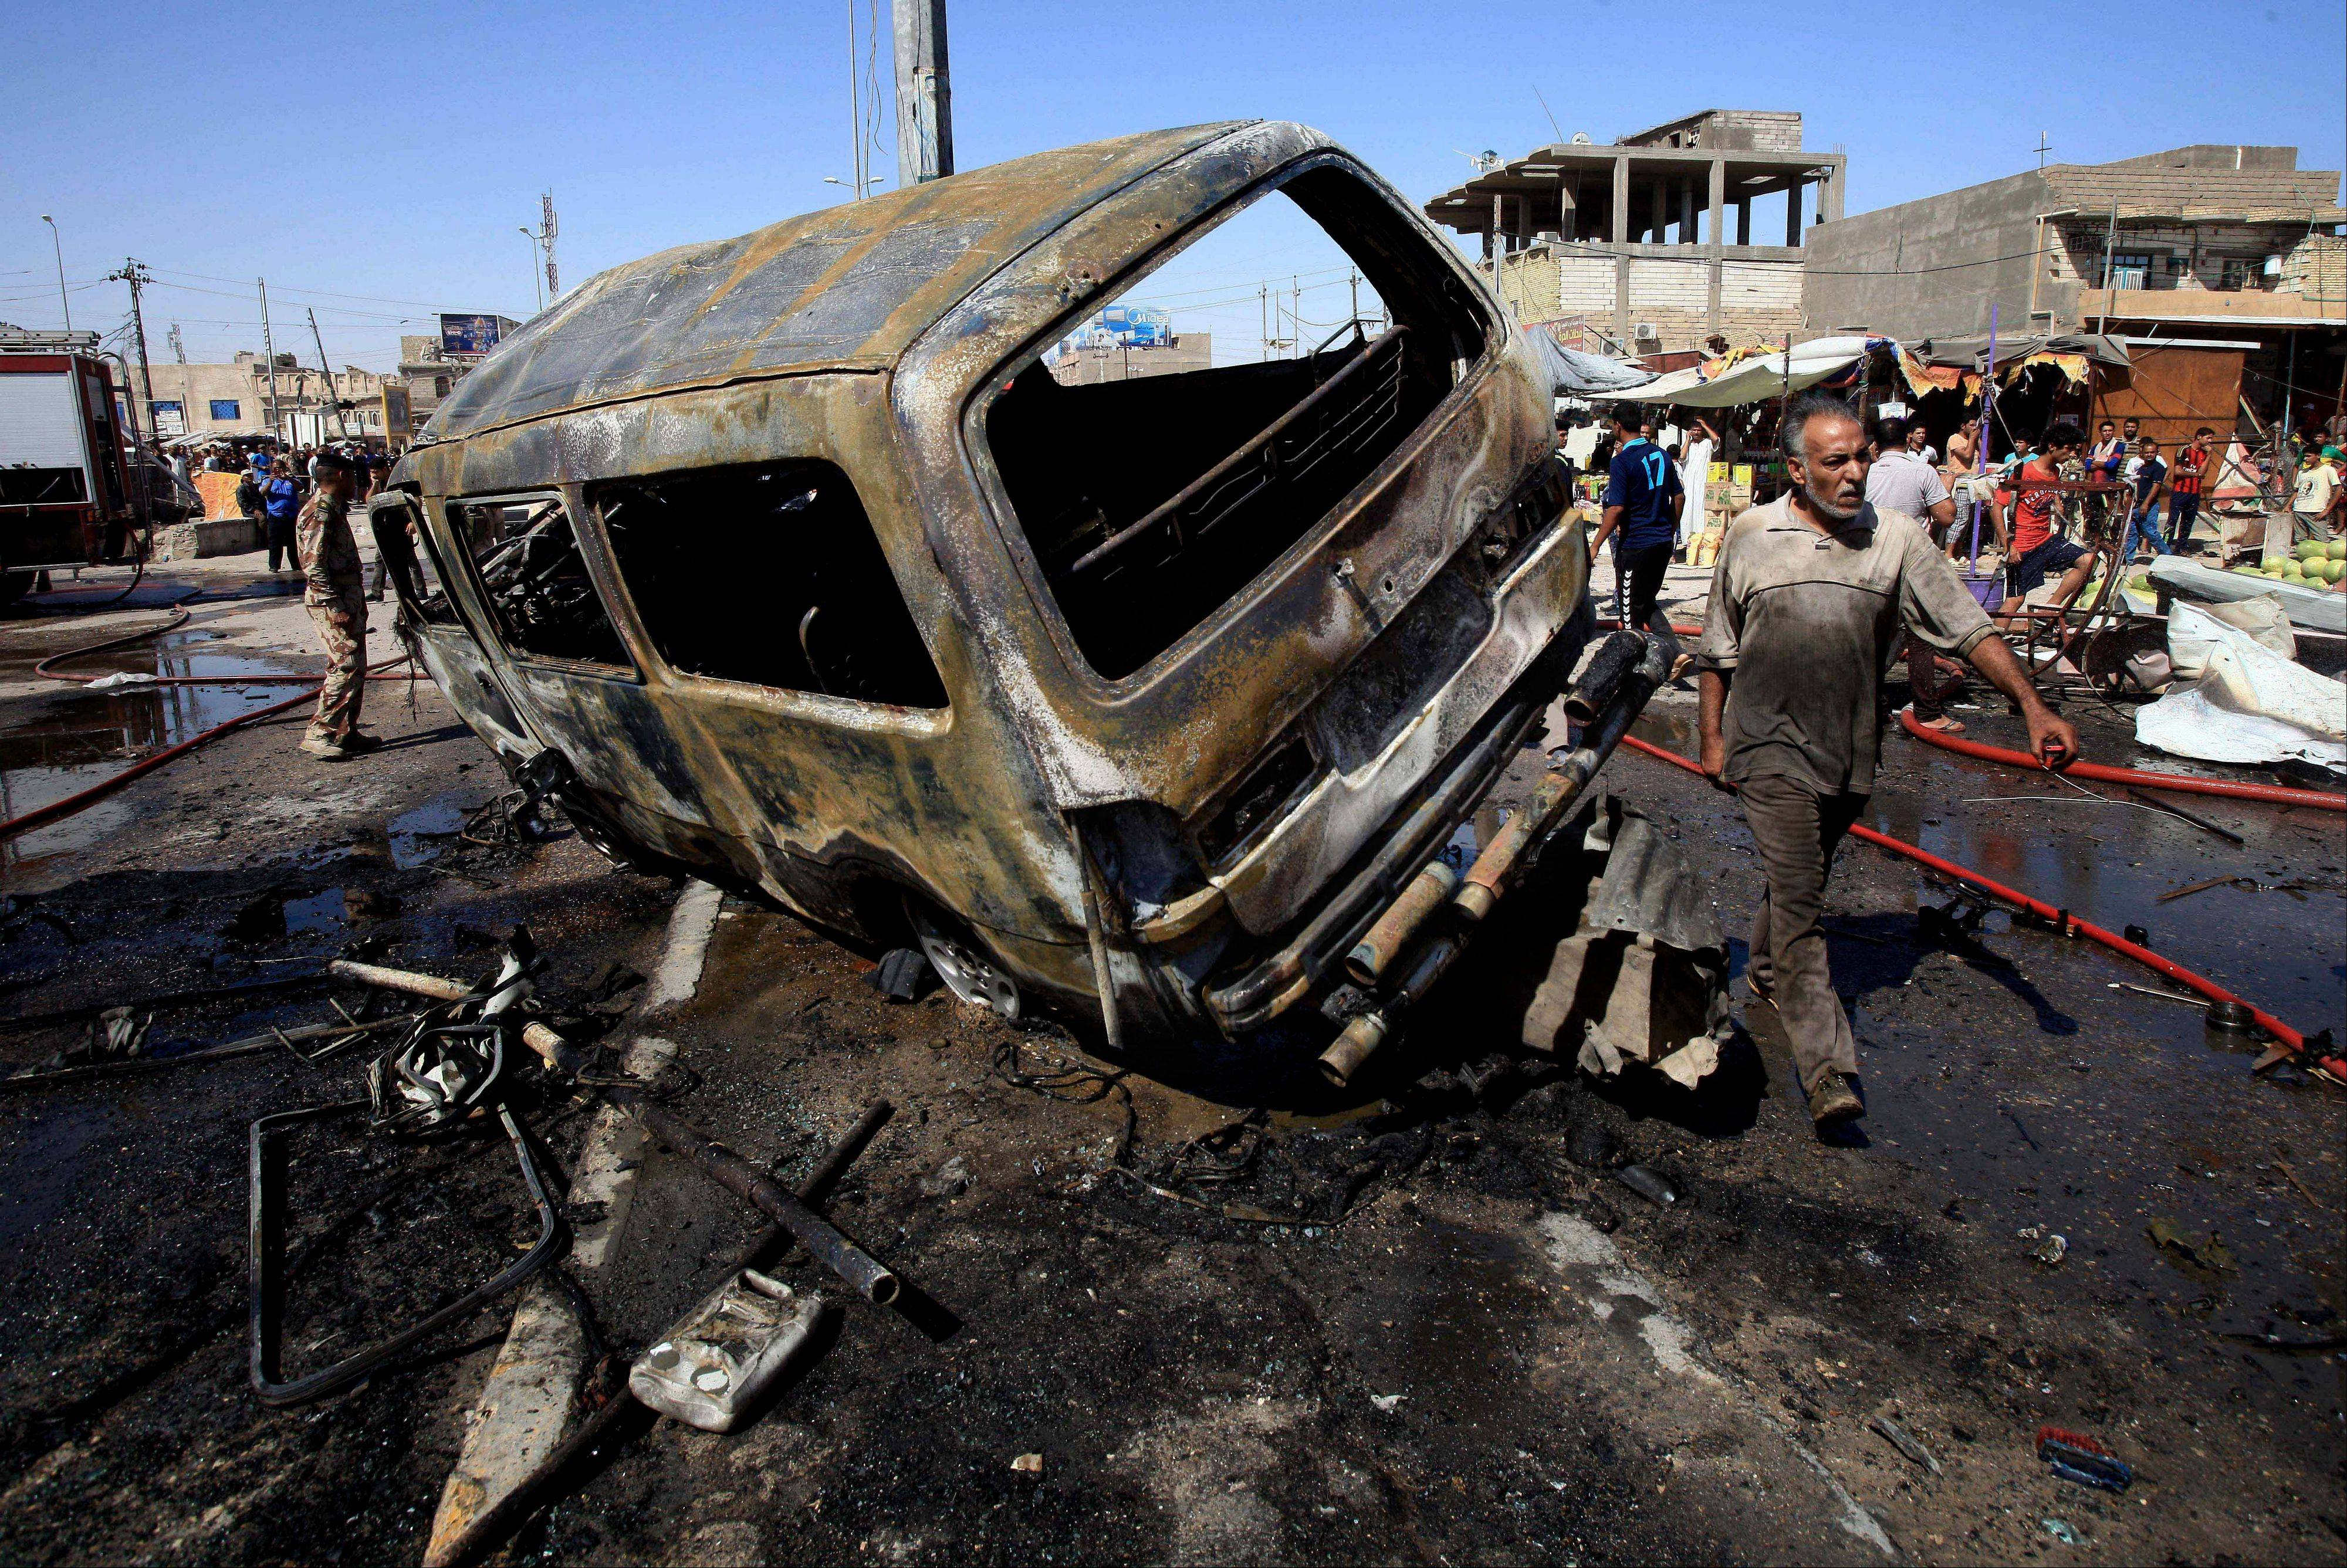 People and security forces inspect the site of a car bomb explosion in Basra, 340 miles southeast of Baghdad, Iraq, Monday. A wave of over a dozen car bombings hit central and southern Iraq during morning rush hour on Monday, officials said, killing scores in the latest coordinated attack by insurgents determined to undermine the government.